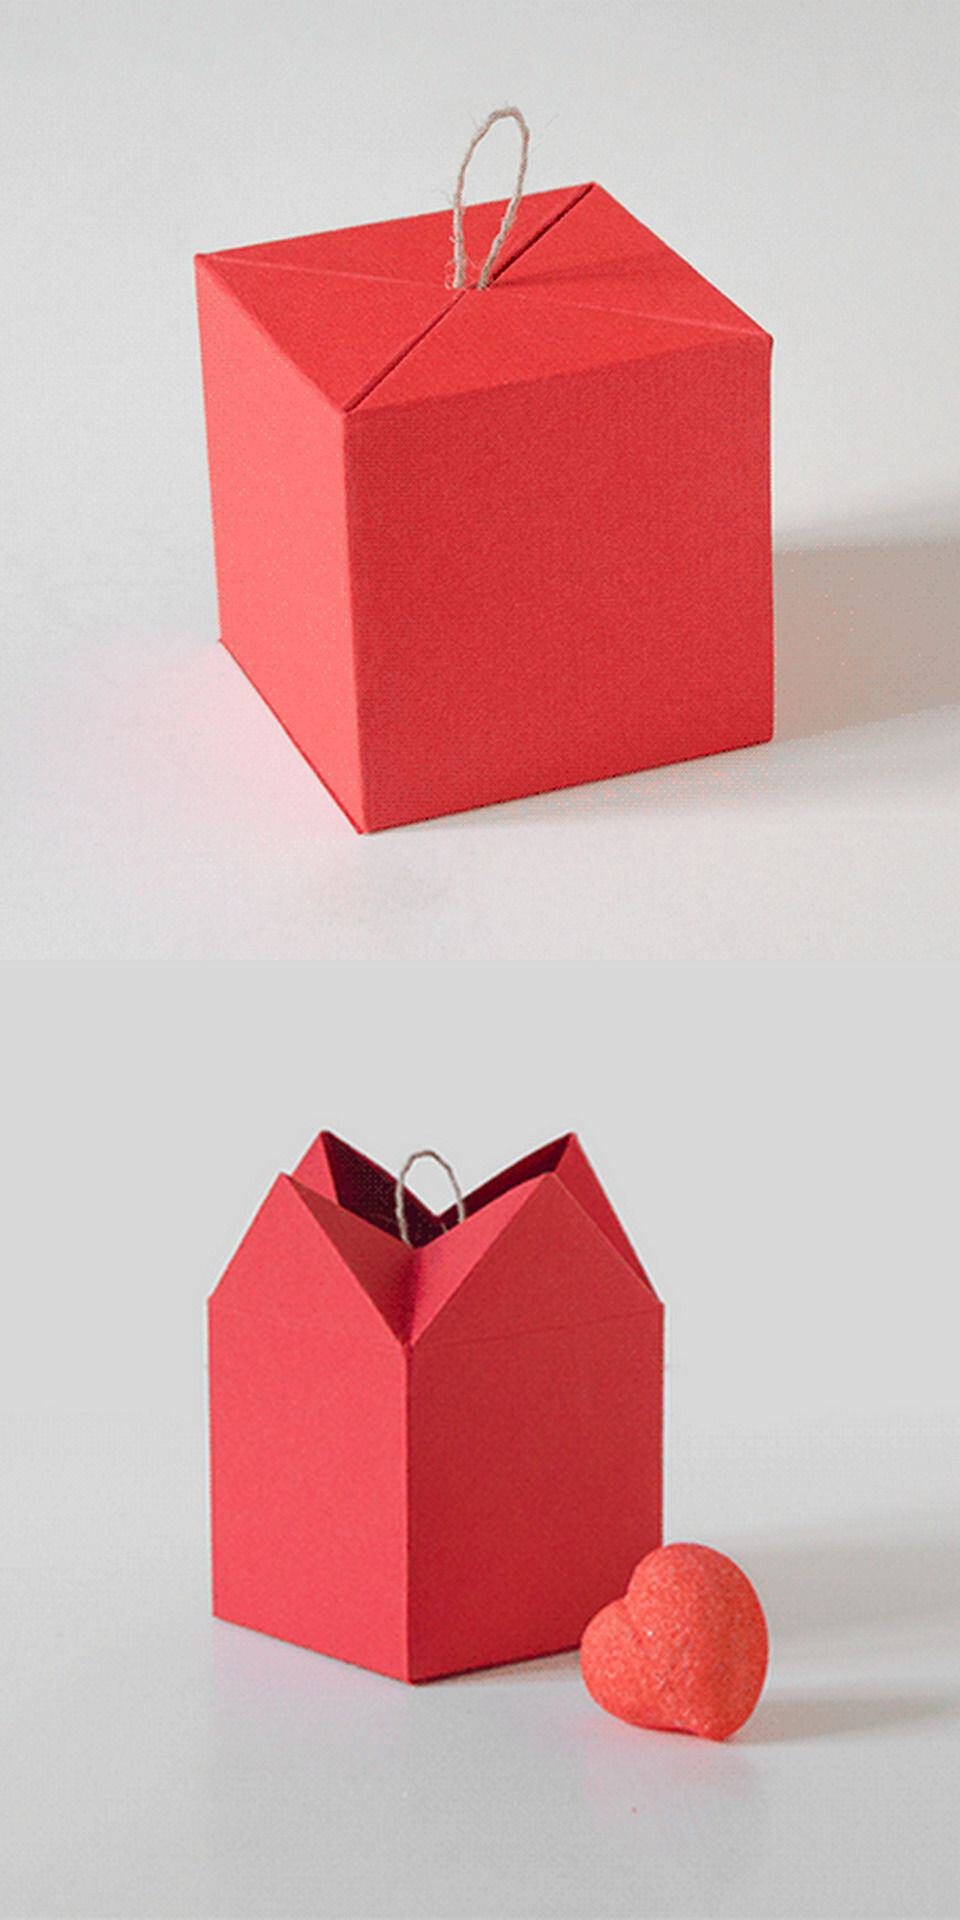 Unfolding cube box